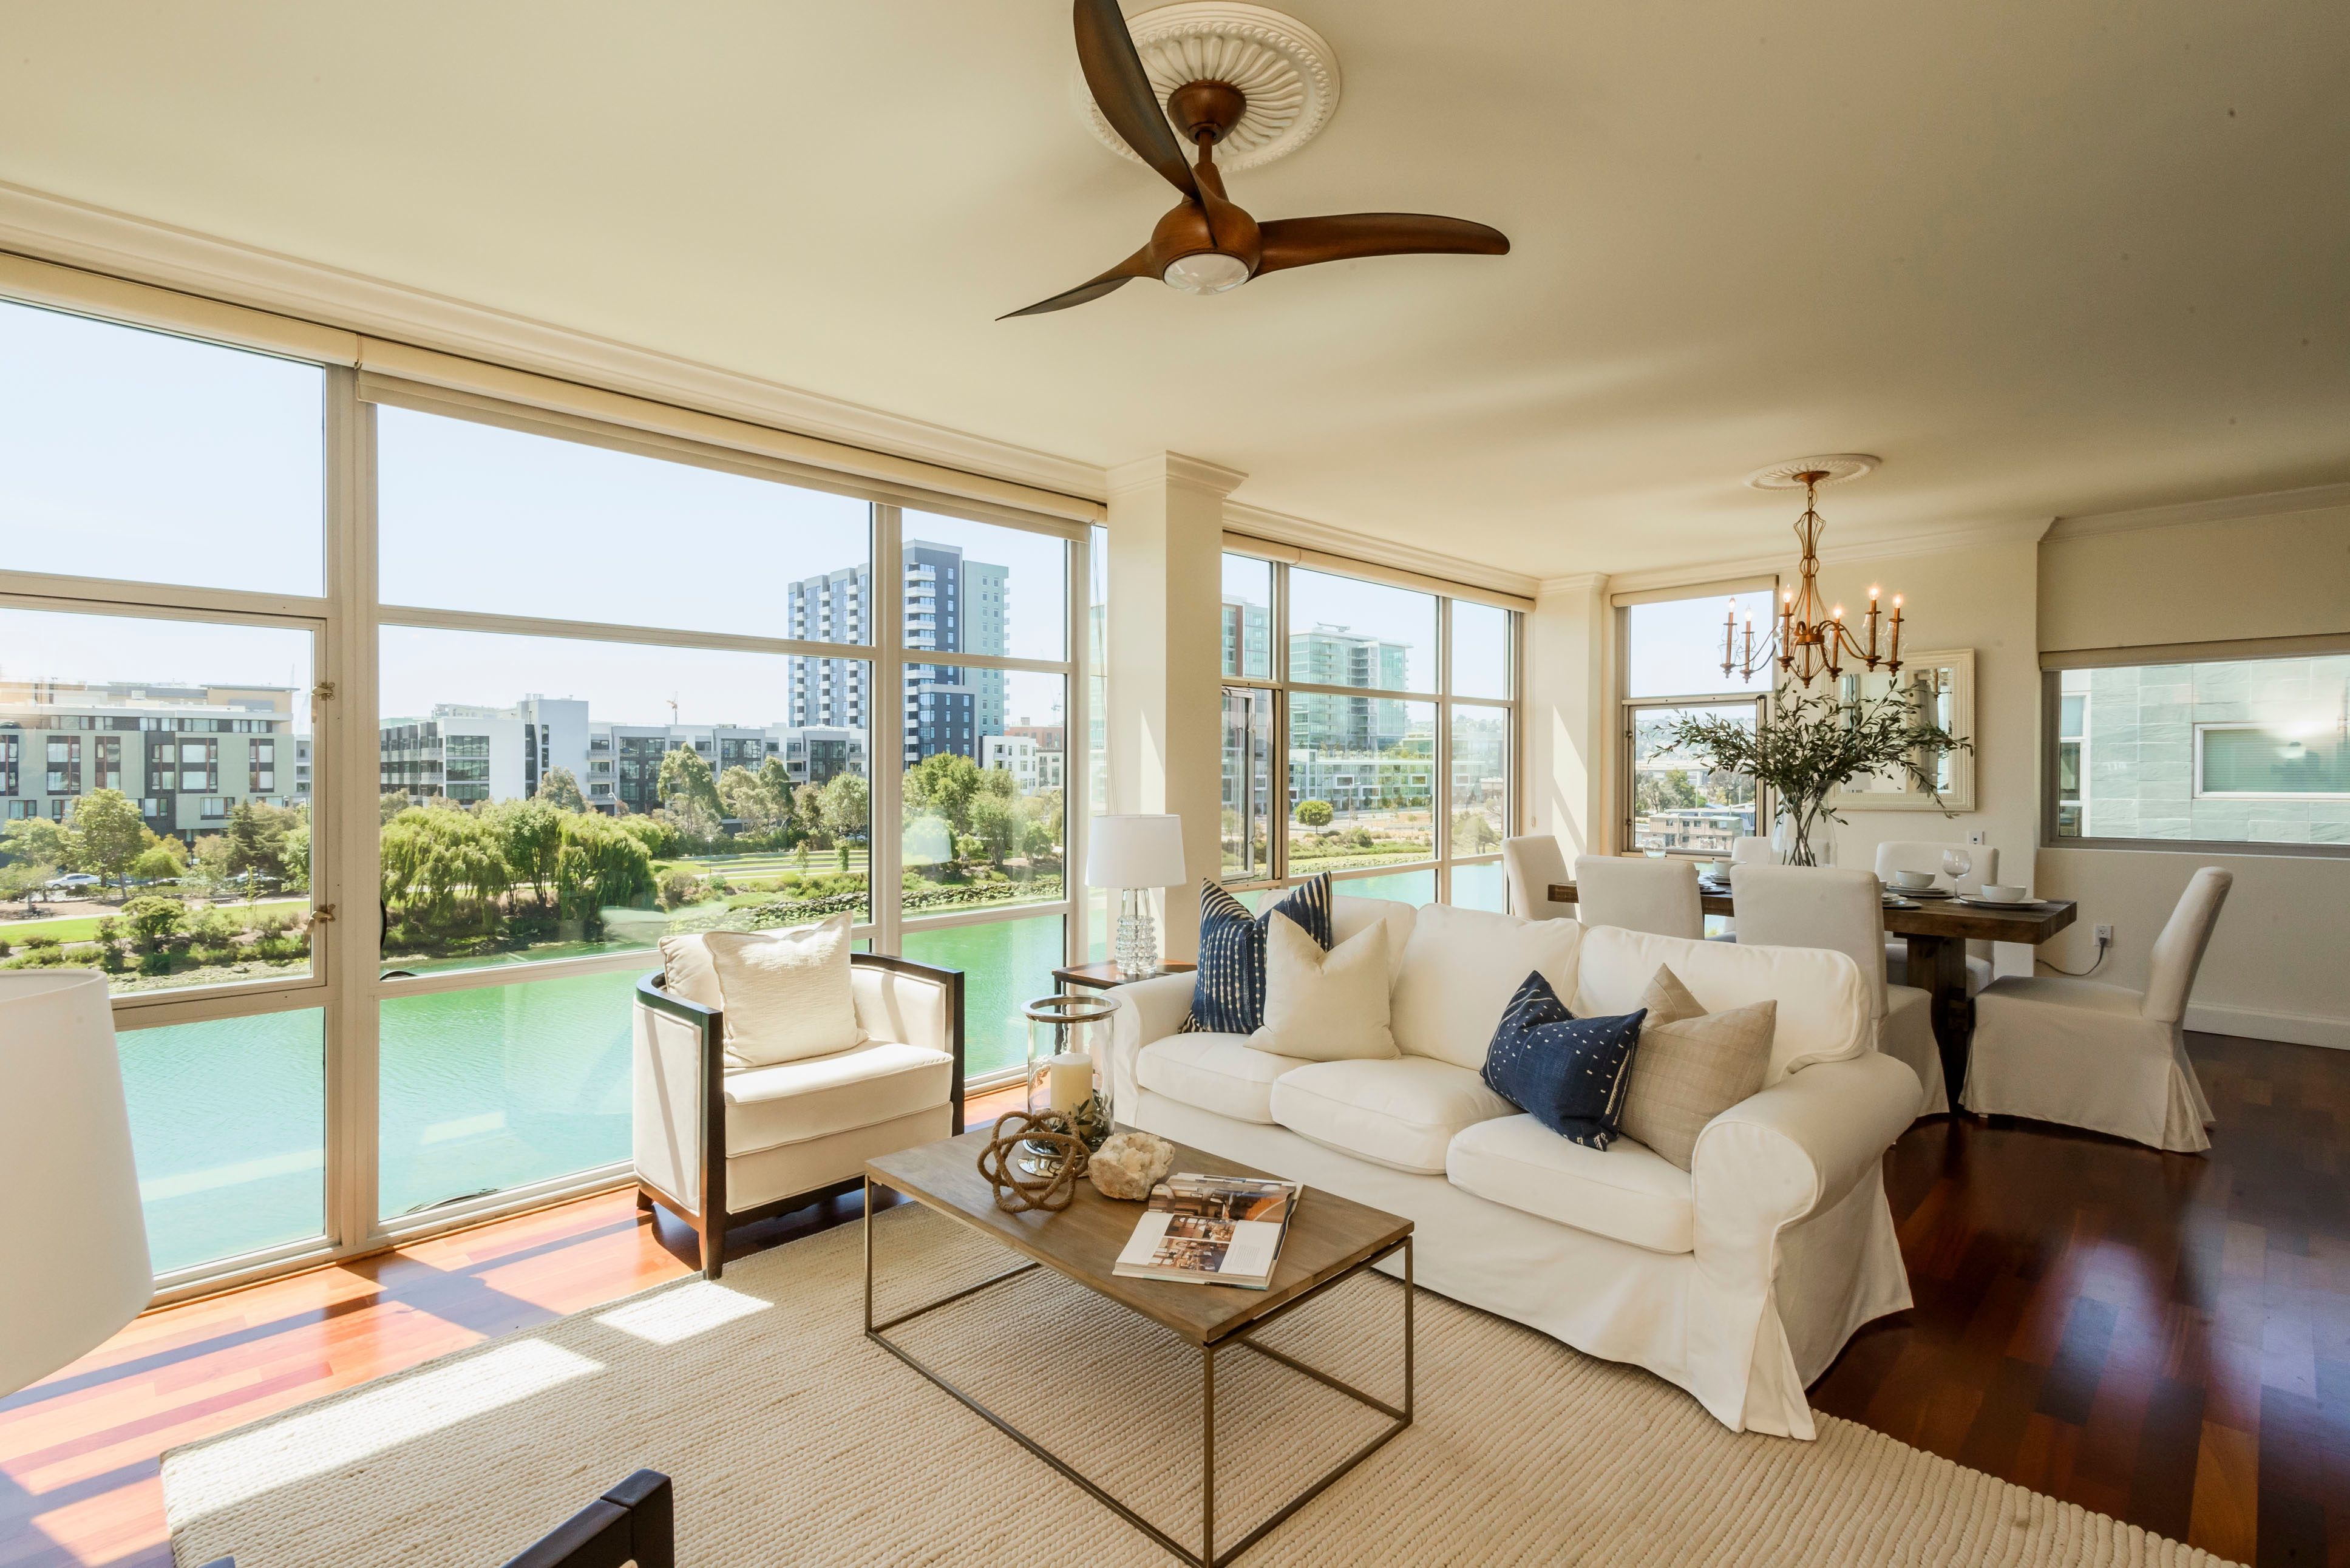 This spacious mission bay unit has everything water views two bedrooms and outdoor